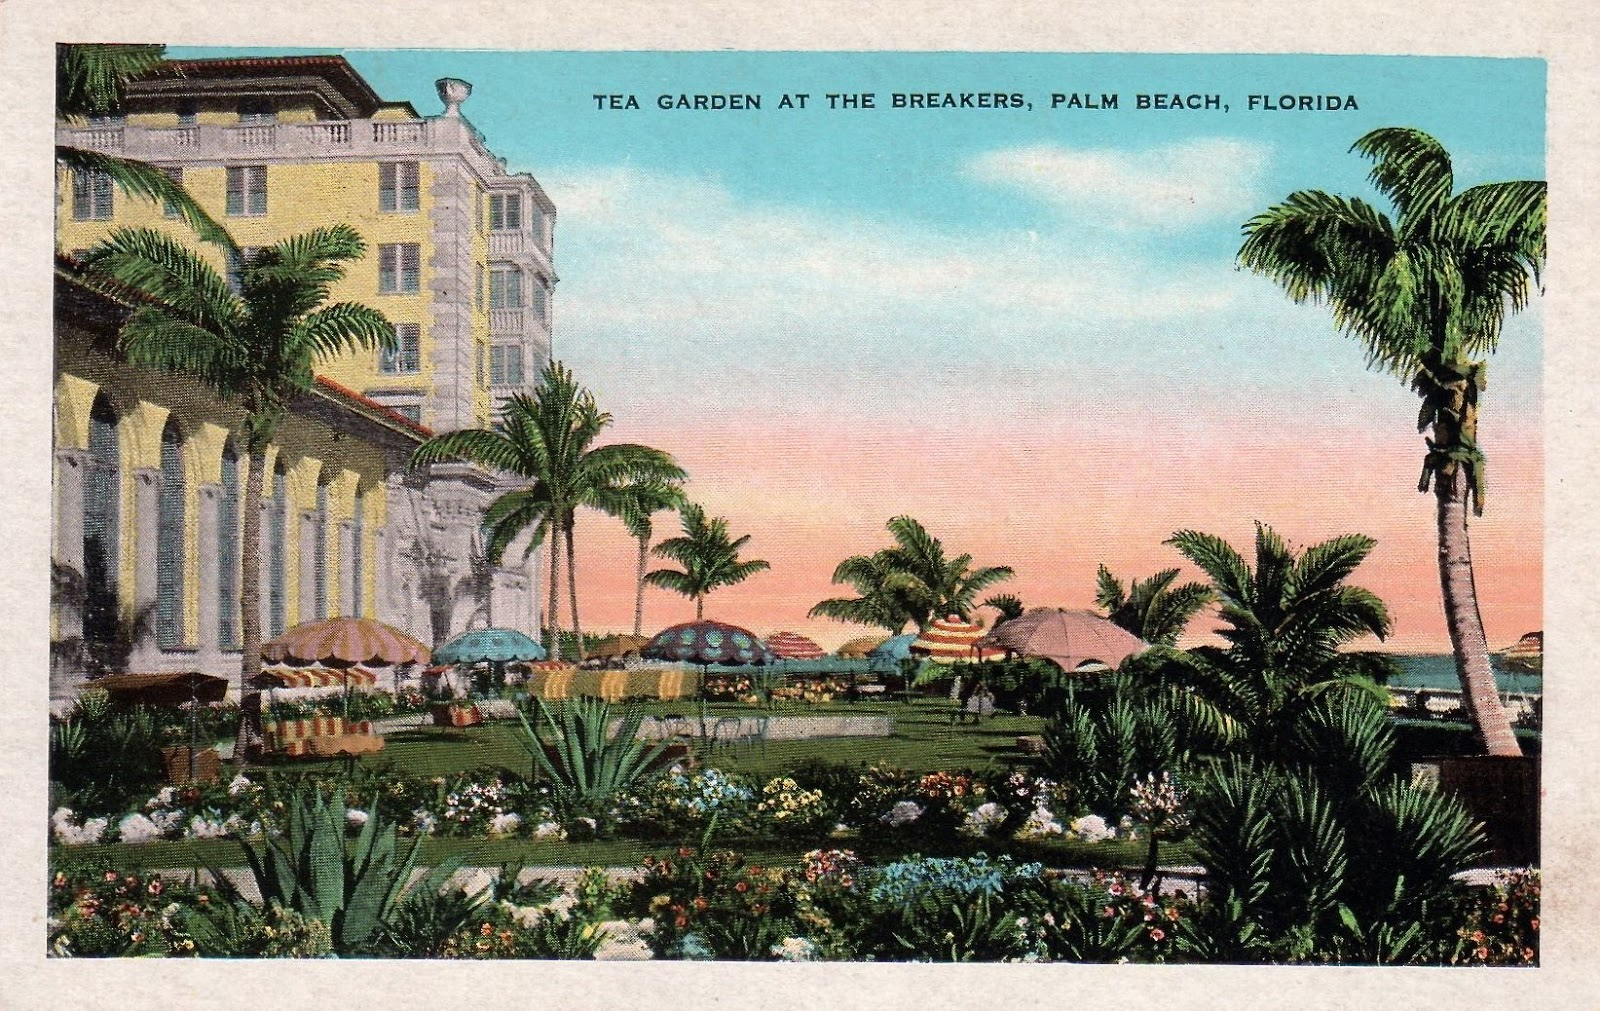 Tea with friends vintage postcards of tea houses gardens Home goods palm beach gardens